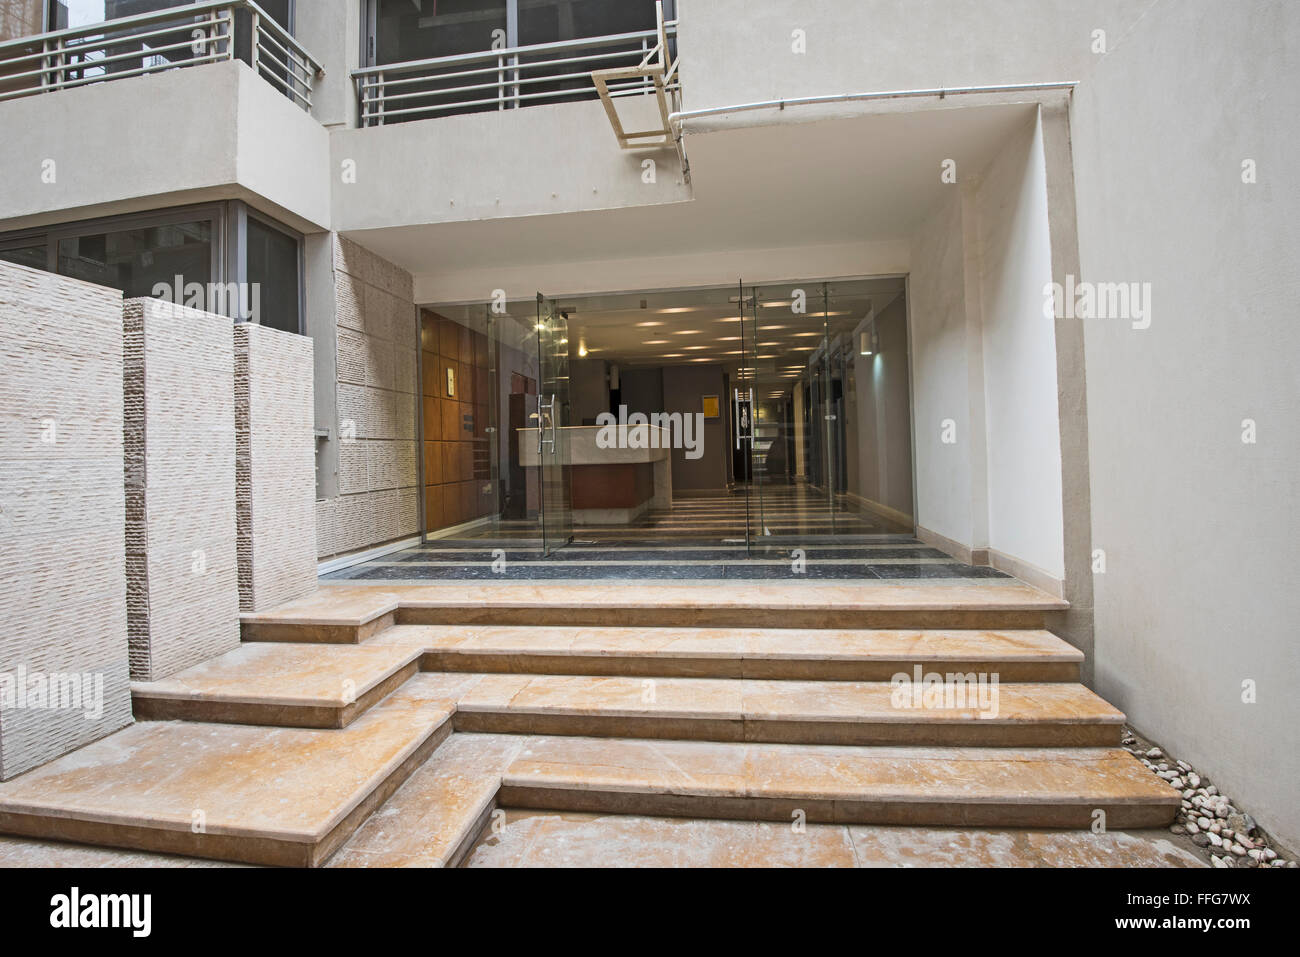 Entrance door and steps to a modern luxury apartment